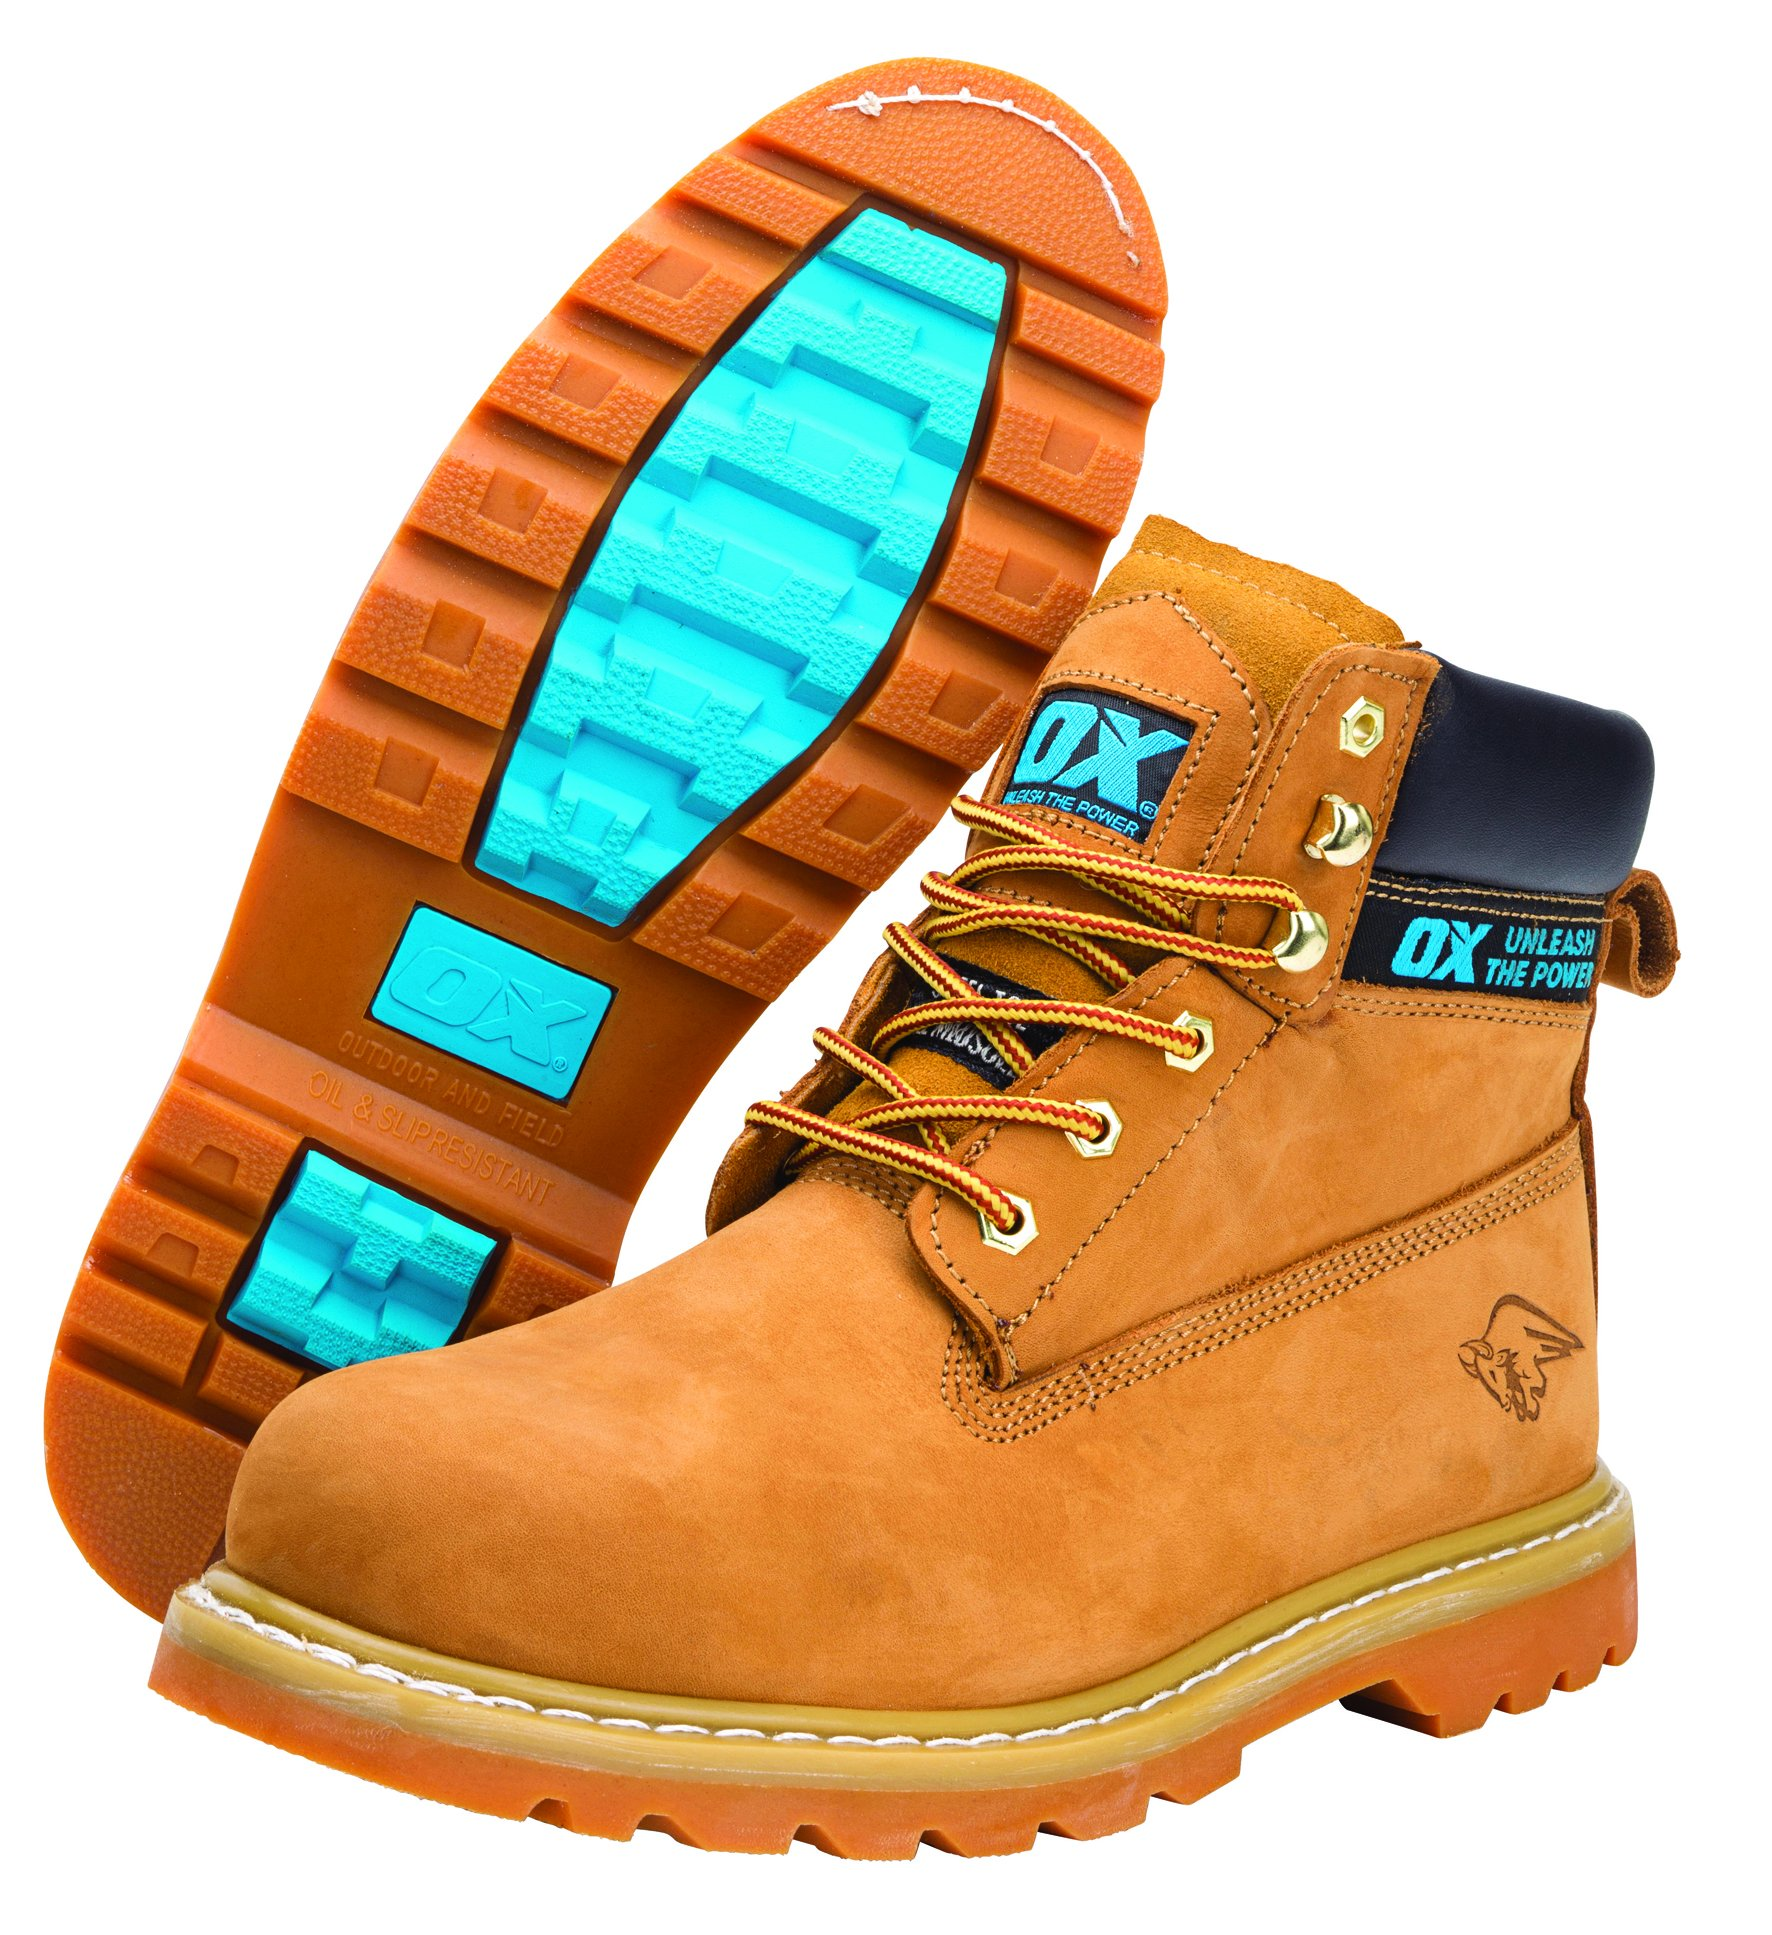 OX Safety Boots - Industrial Grade